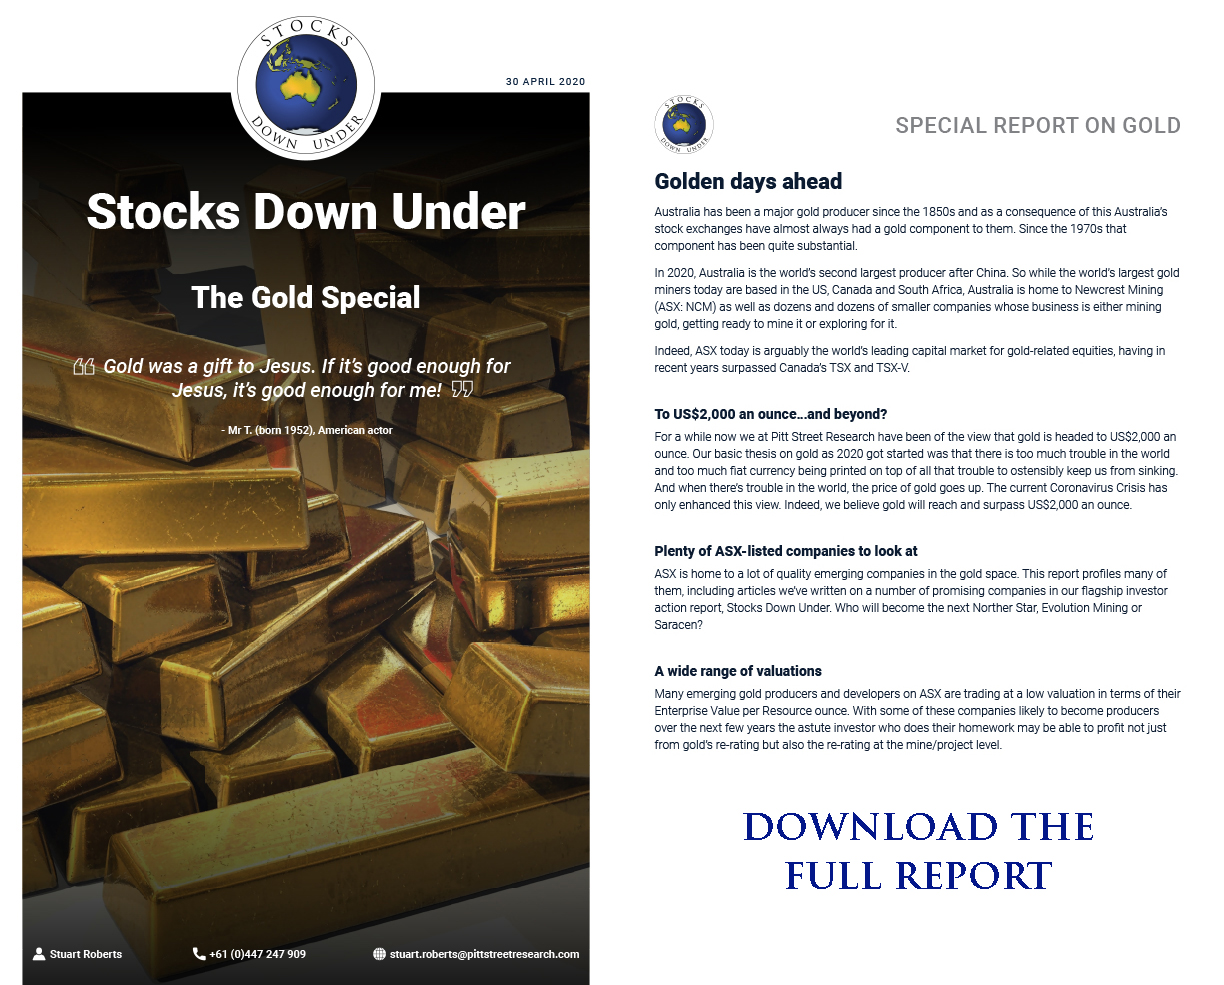 Stocks-Down-Under-Gold-report-30-04-2020-download-1